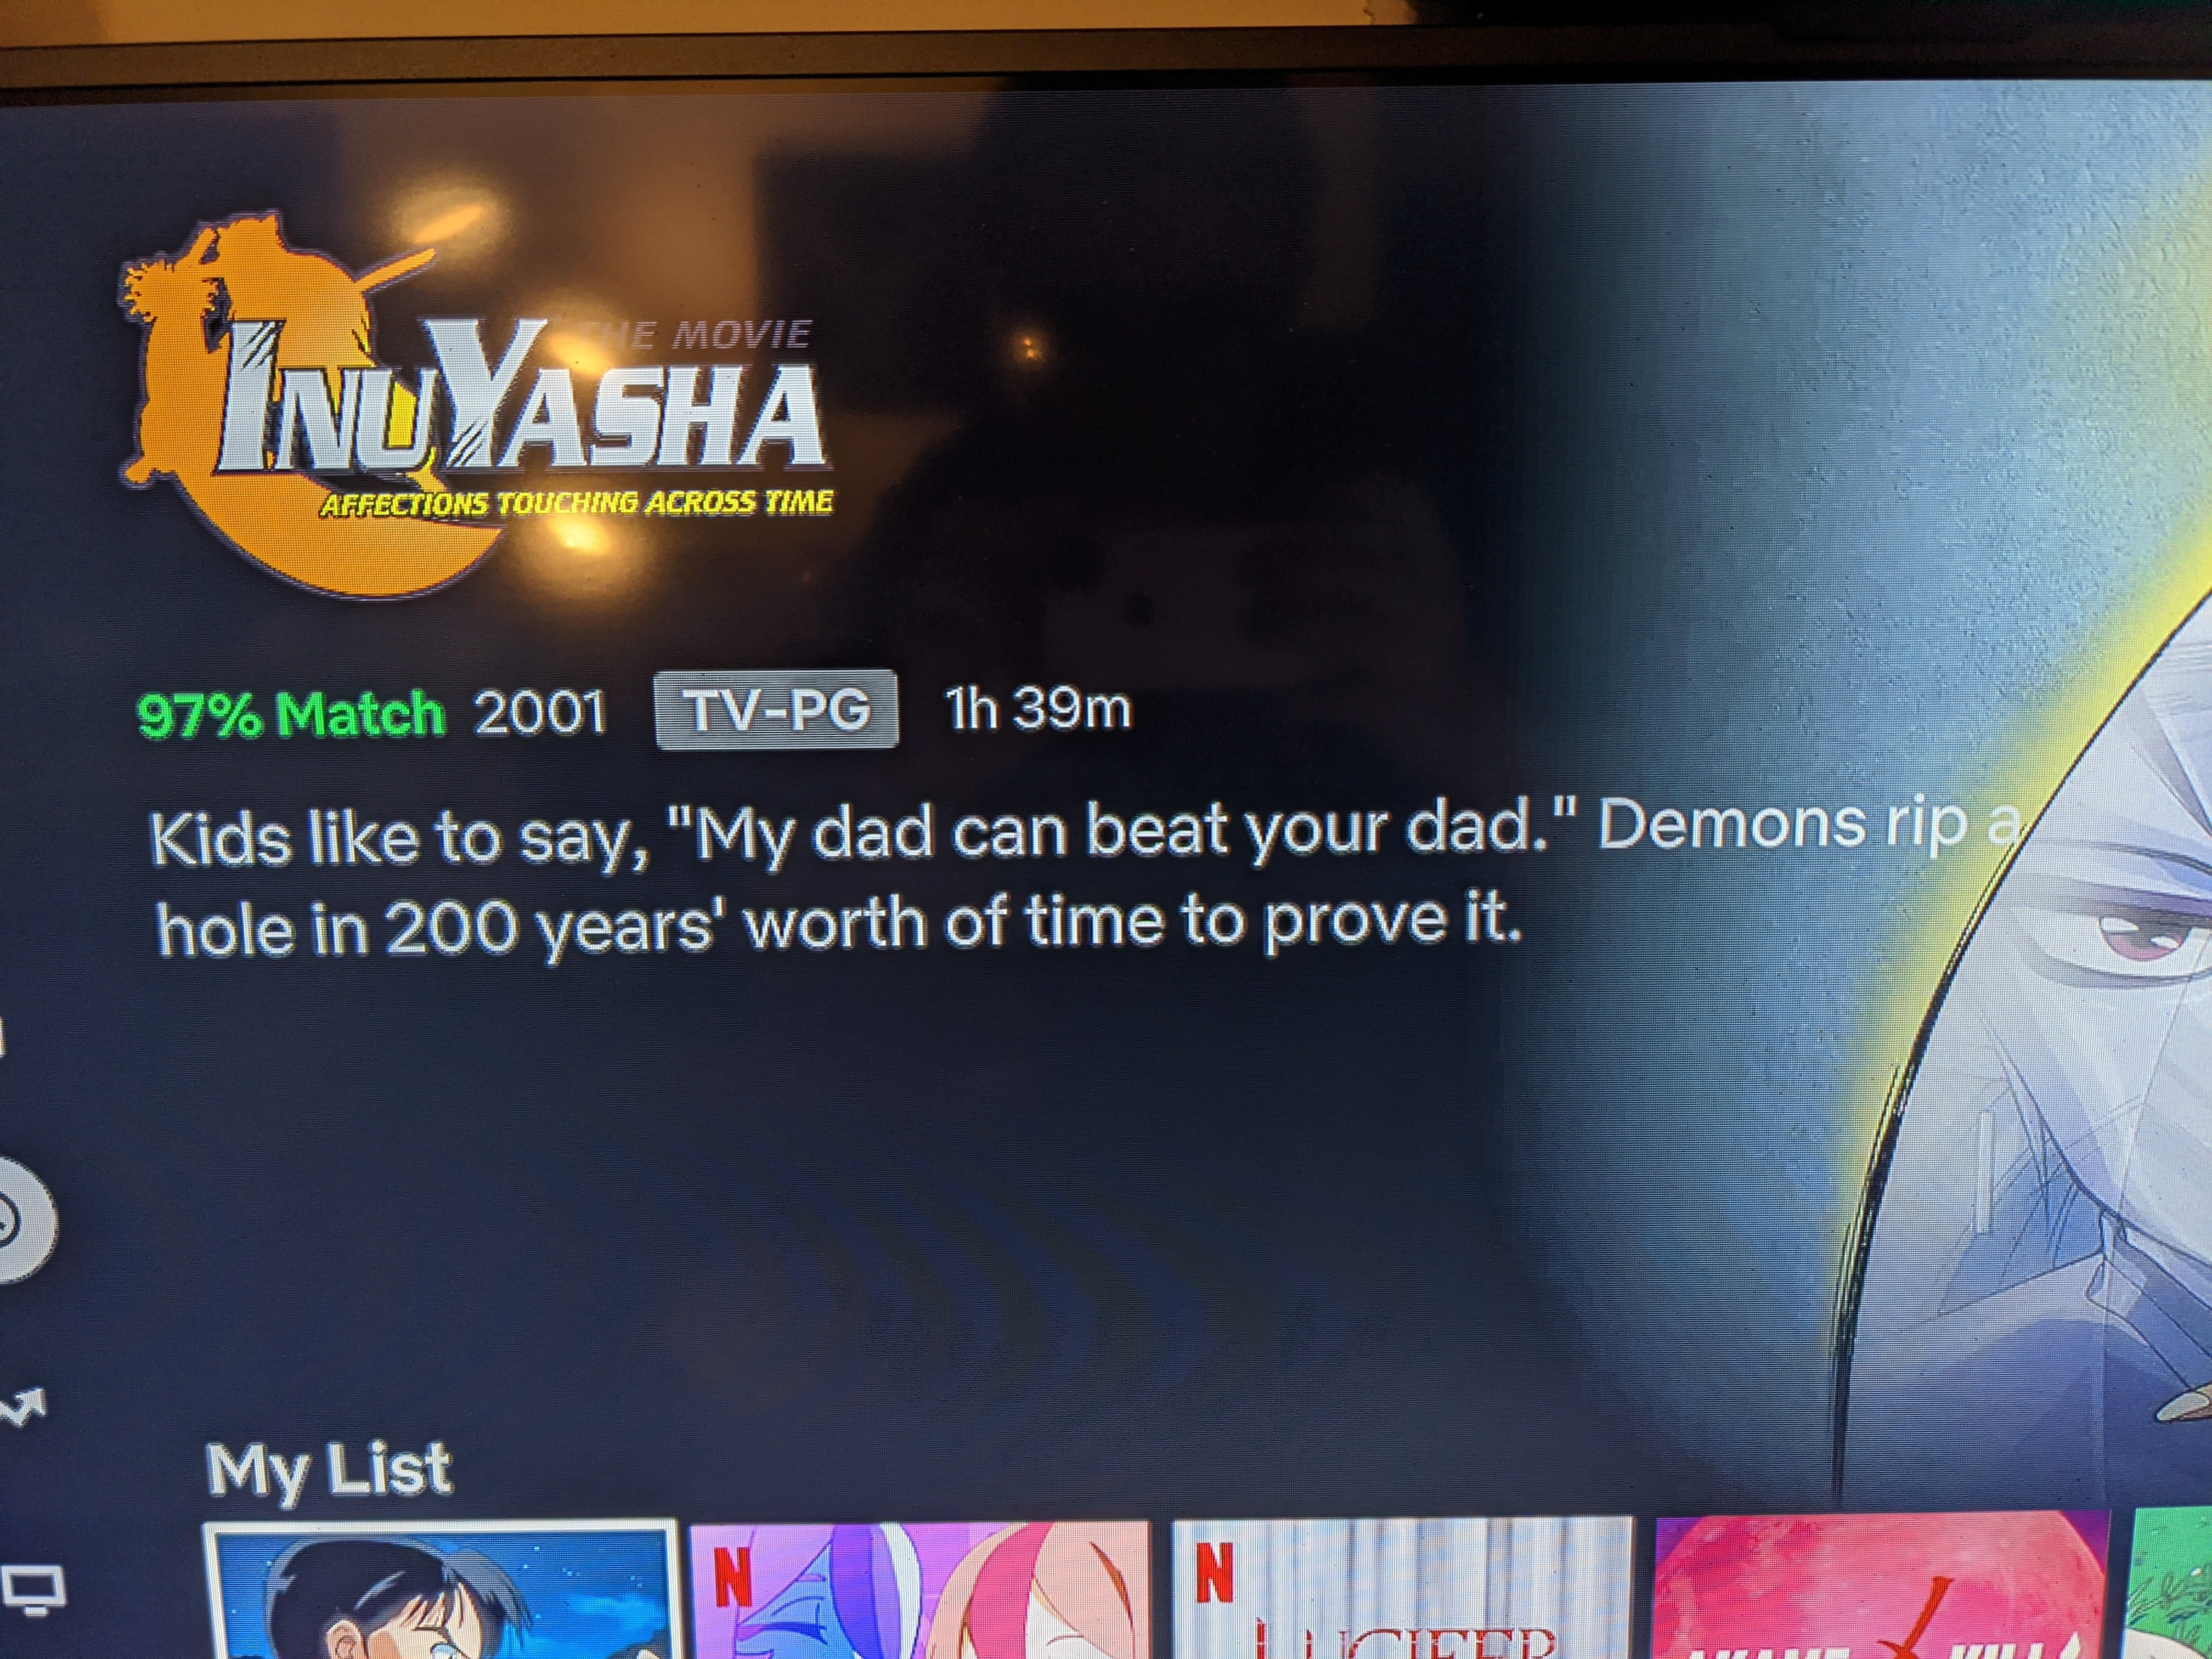 A photo taken on my phone of the Netflix blurb for the first inuyasha movie.